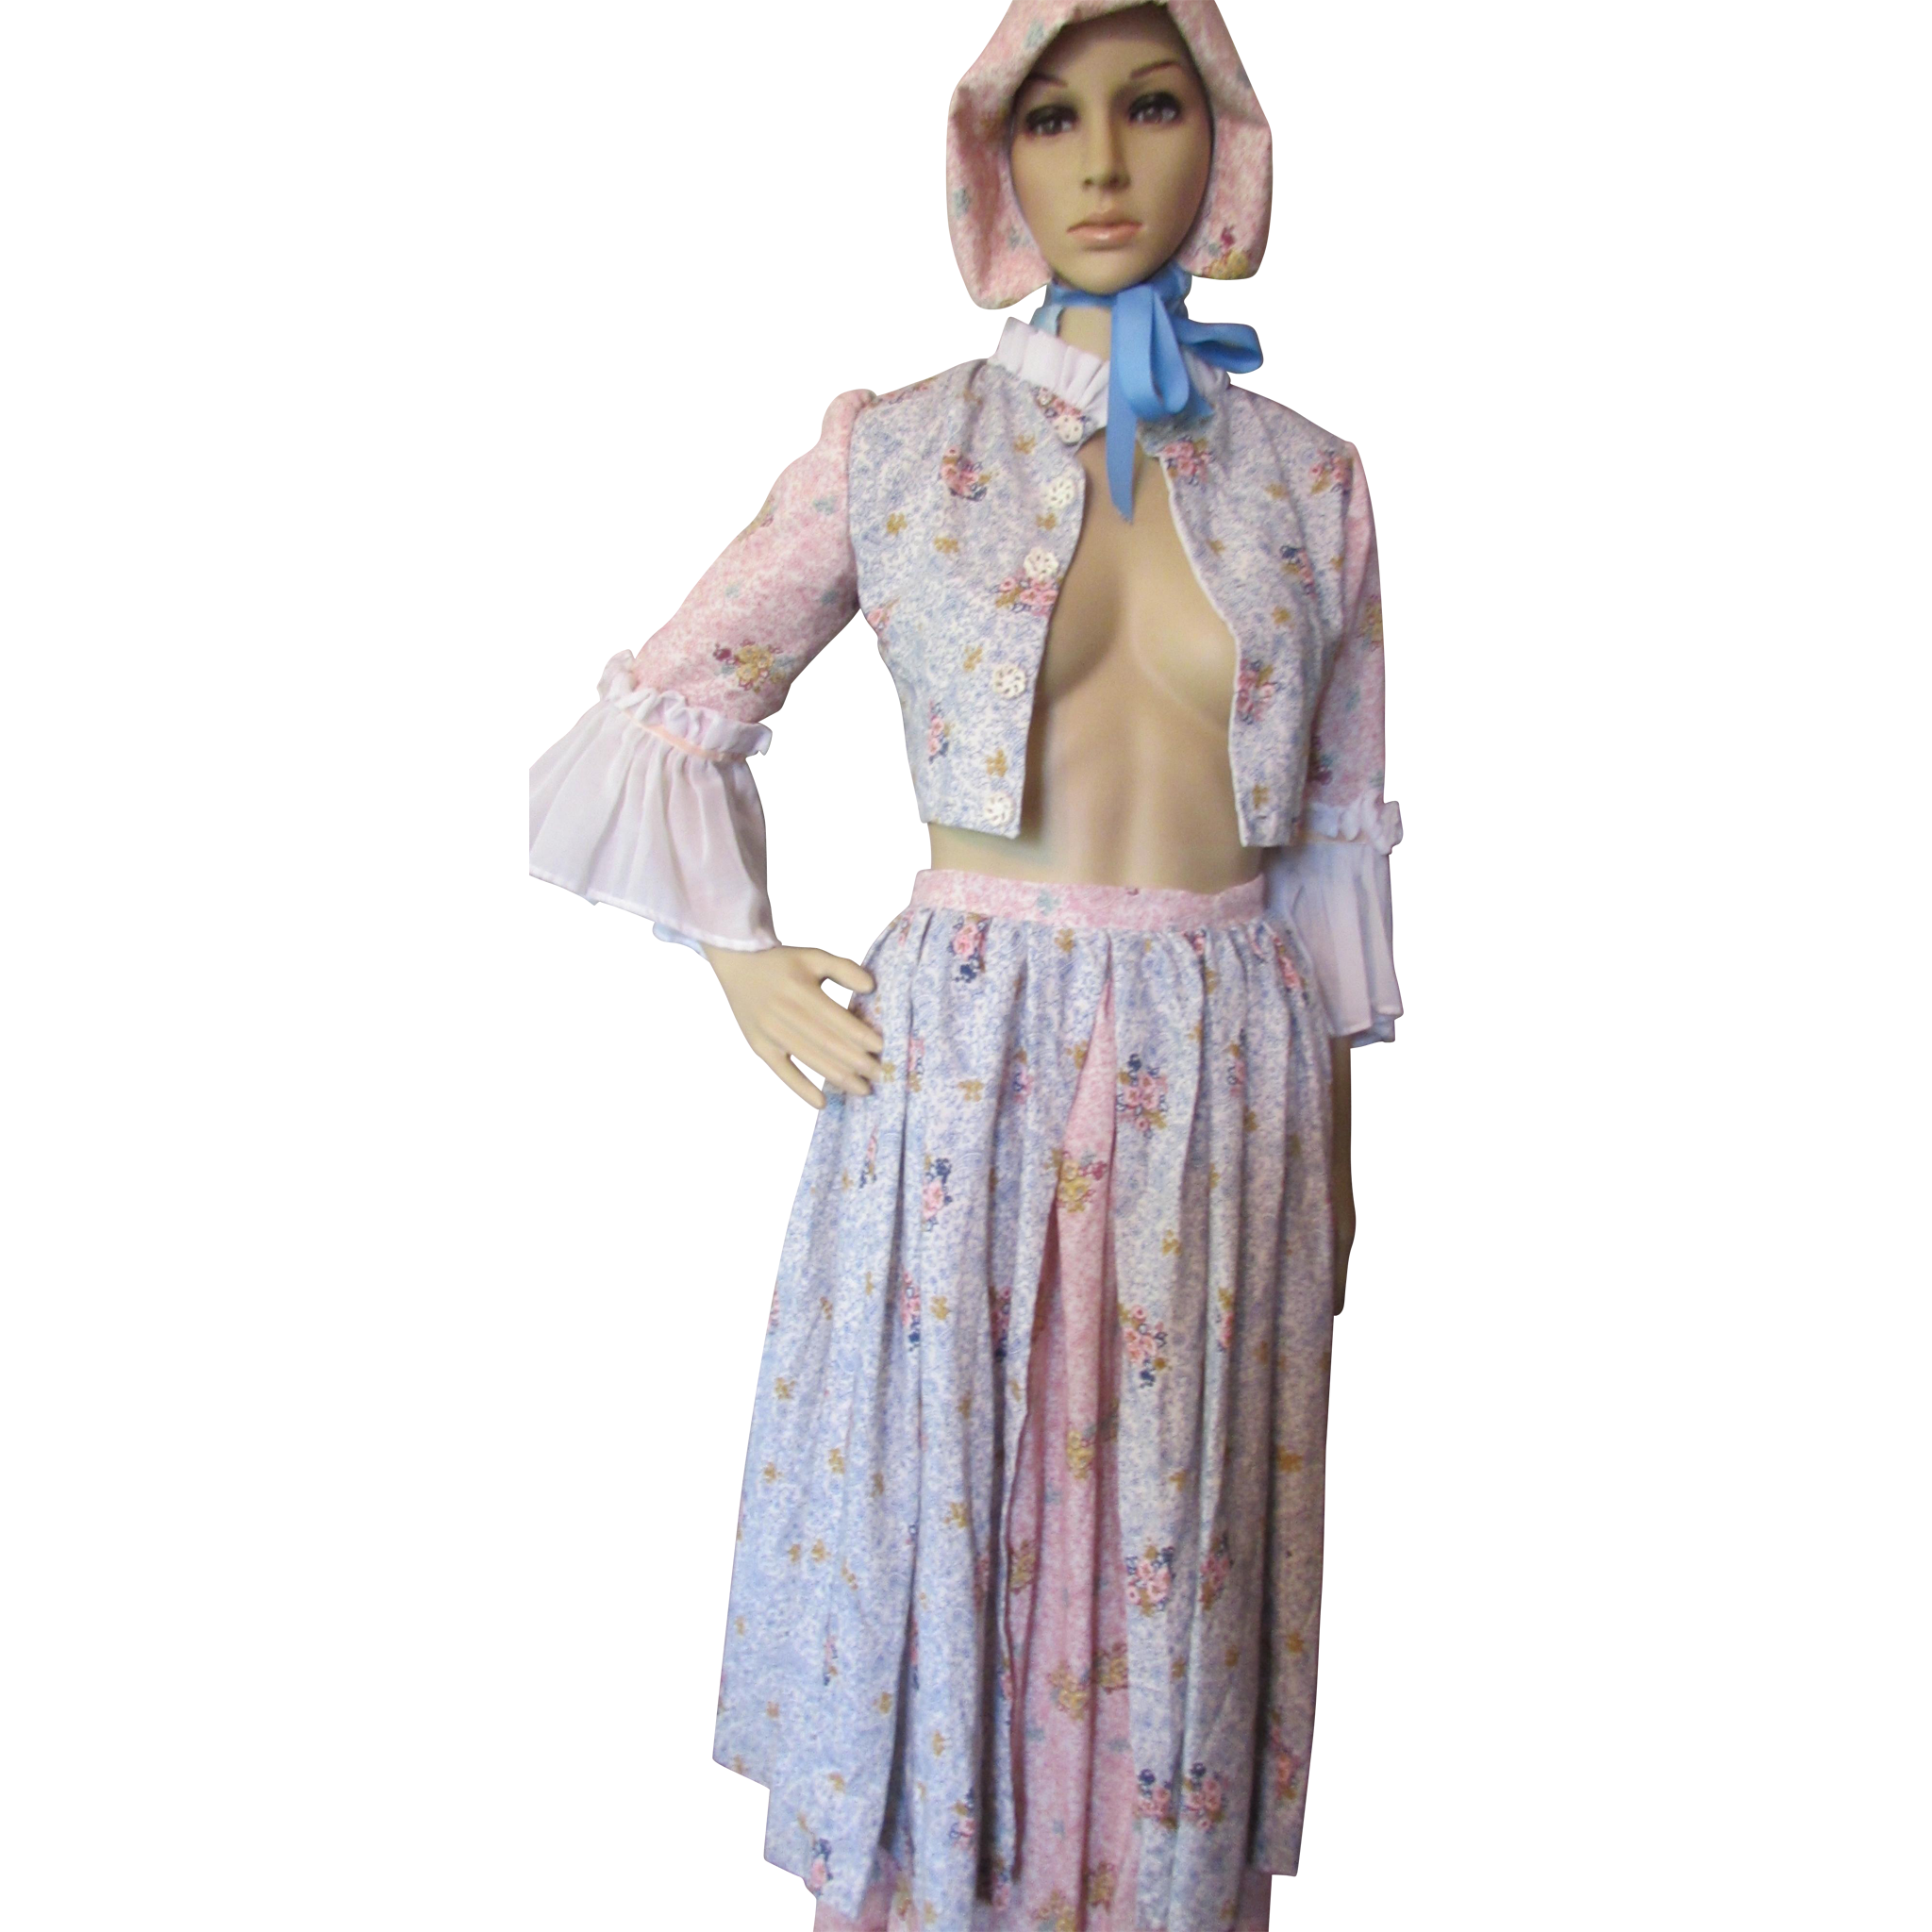 Costume of Colonial Woman or Milking Maid in Pink and Blue Cotton Print Adolescent Size